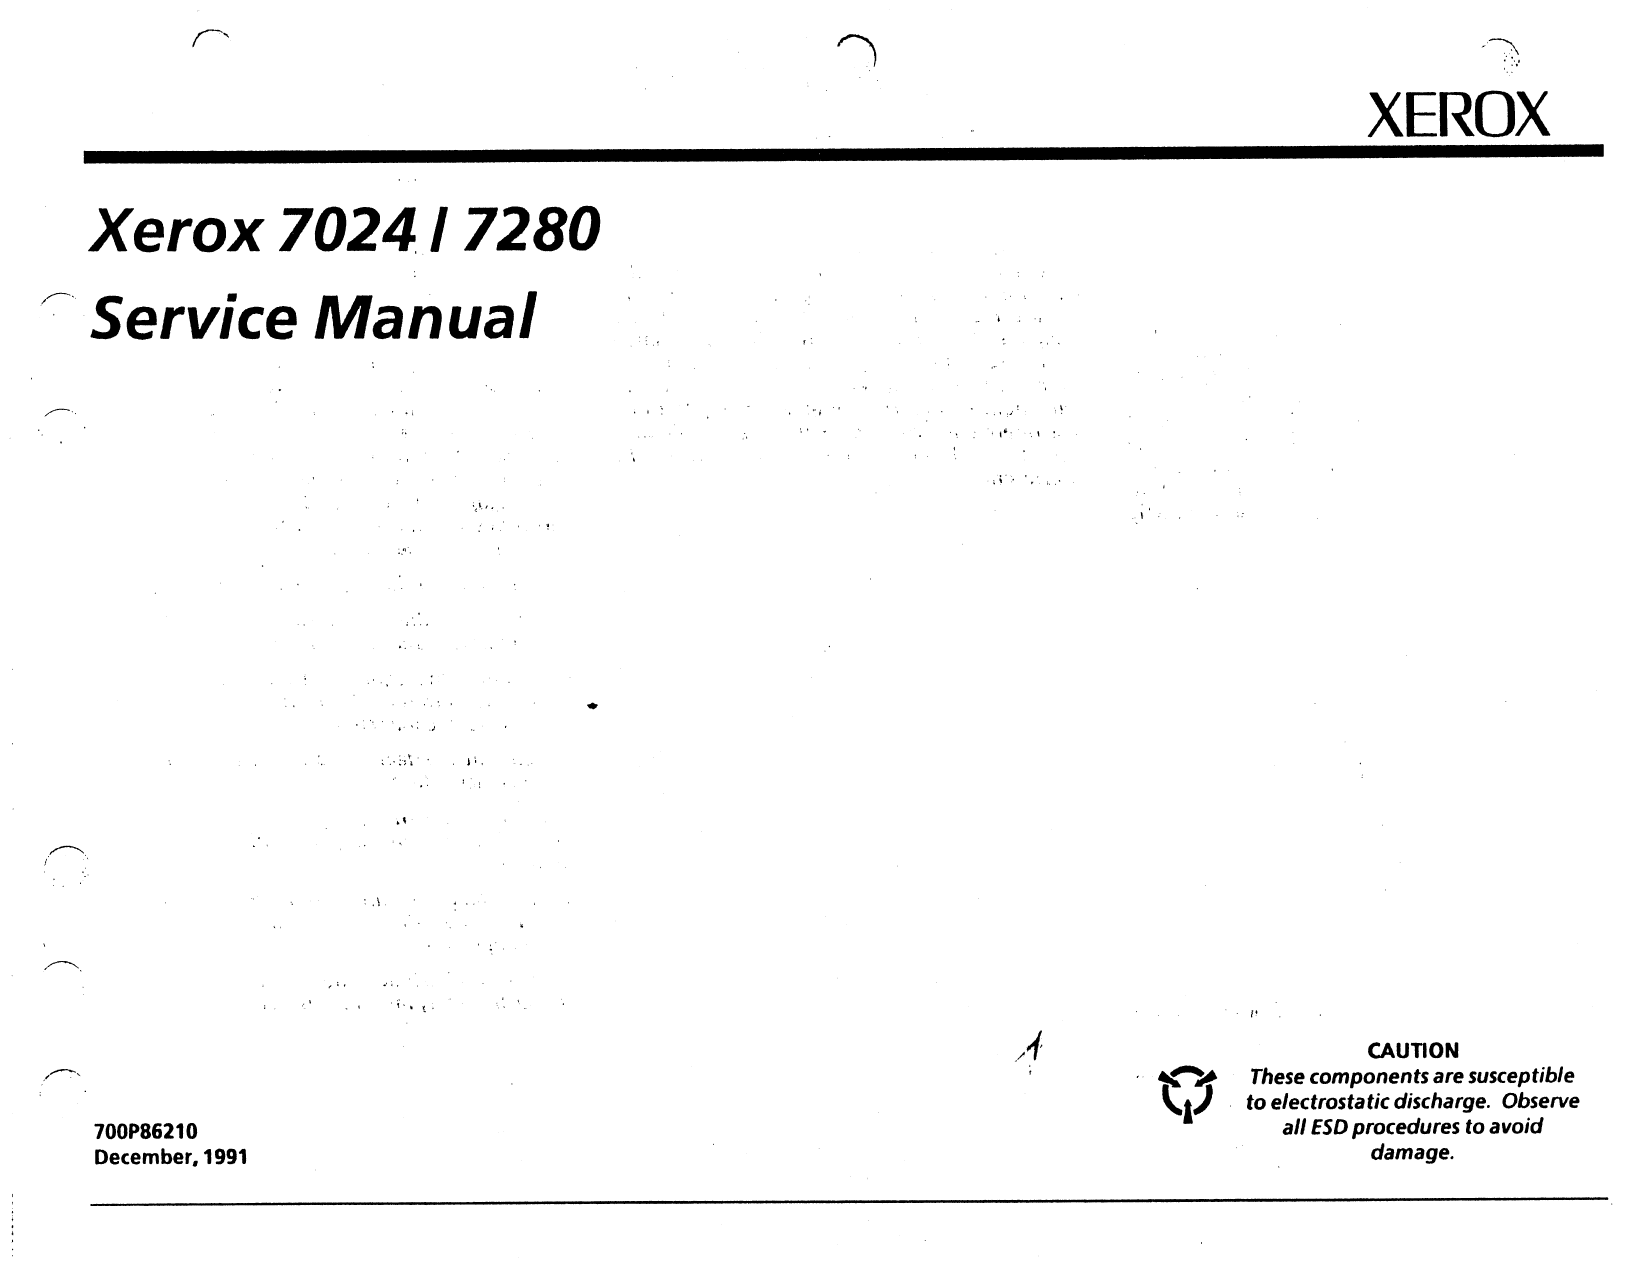 Xerox Printer 7024 7280 Fax Parts List and Service Manual-1